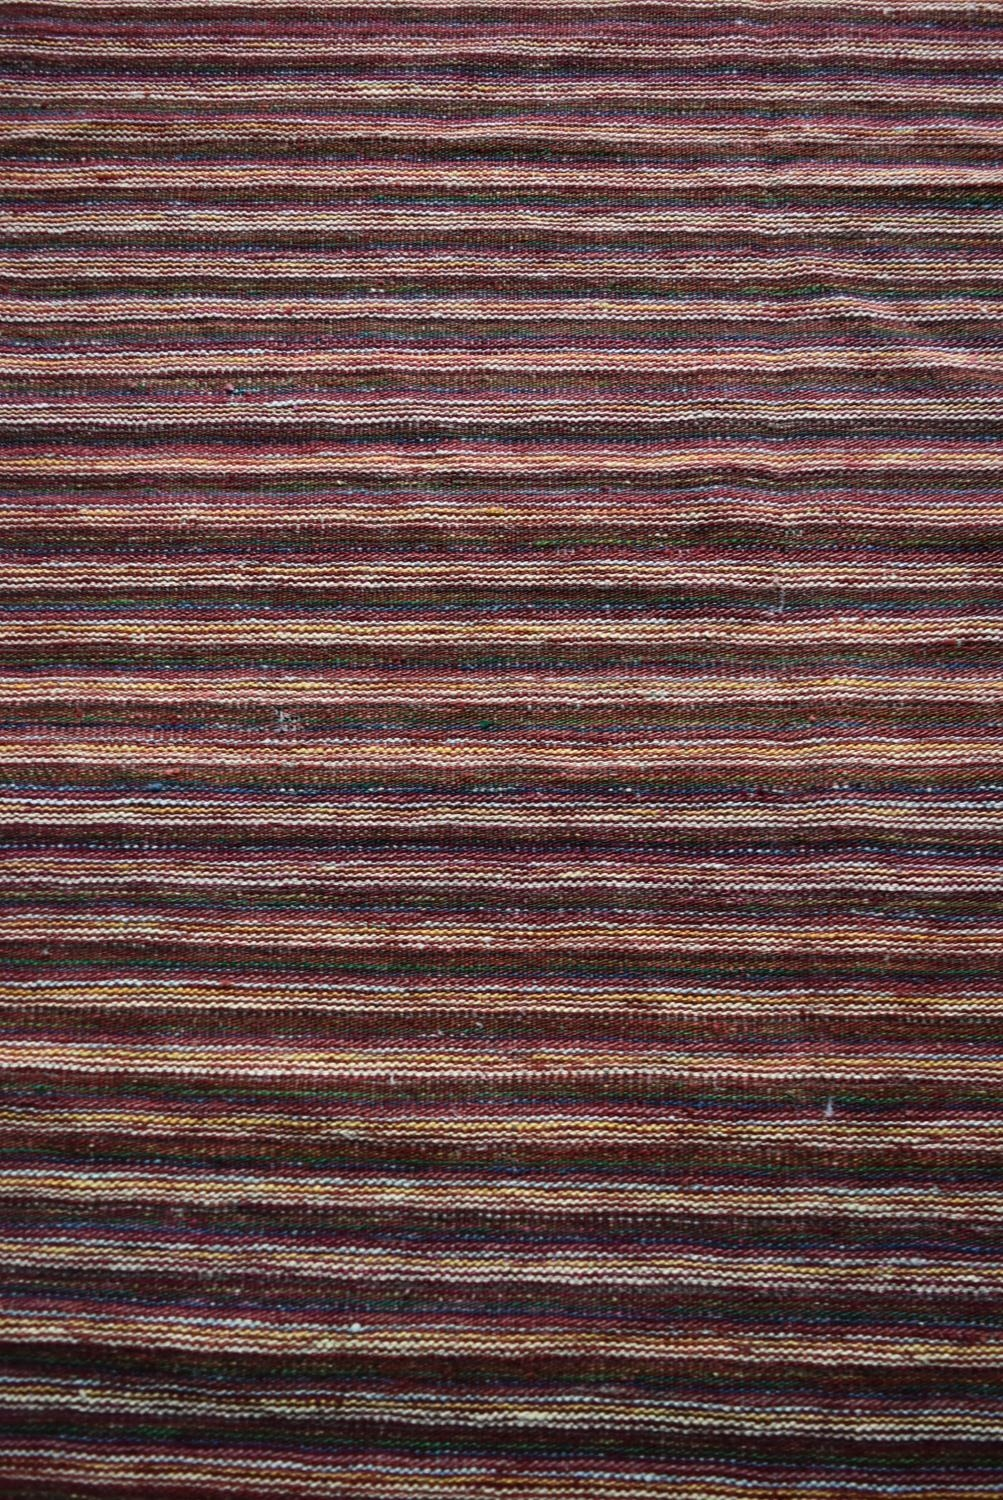 A large Modern Kilim with woven bands in hues of burgundy, cream and blue. L.332xW.247cm